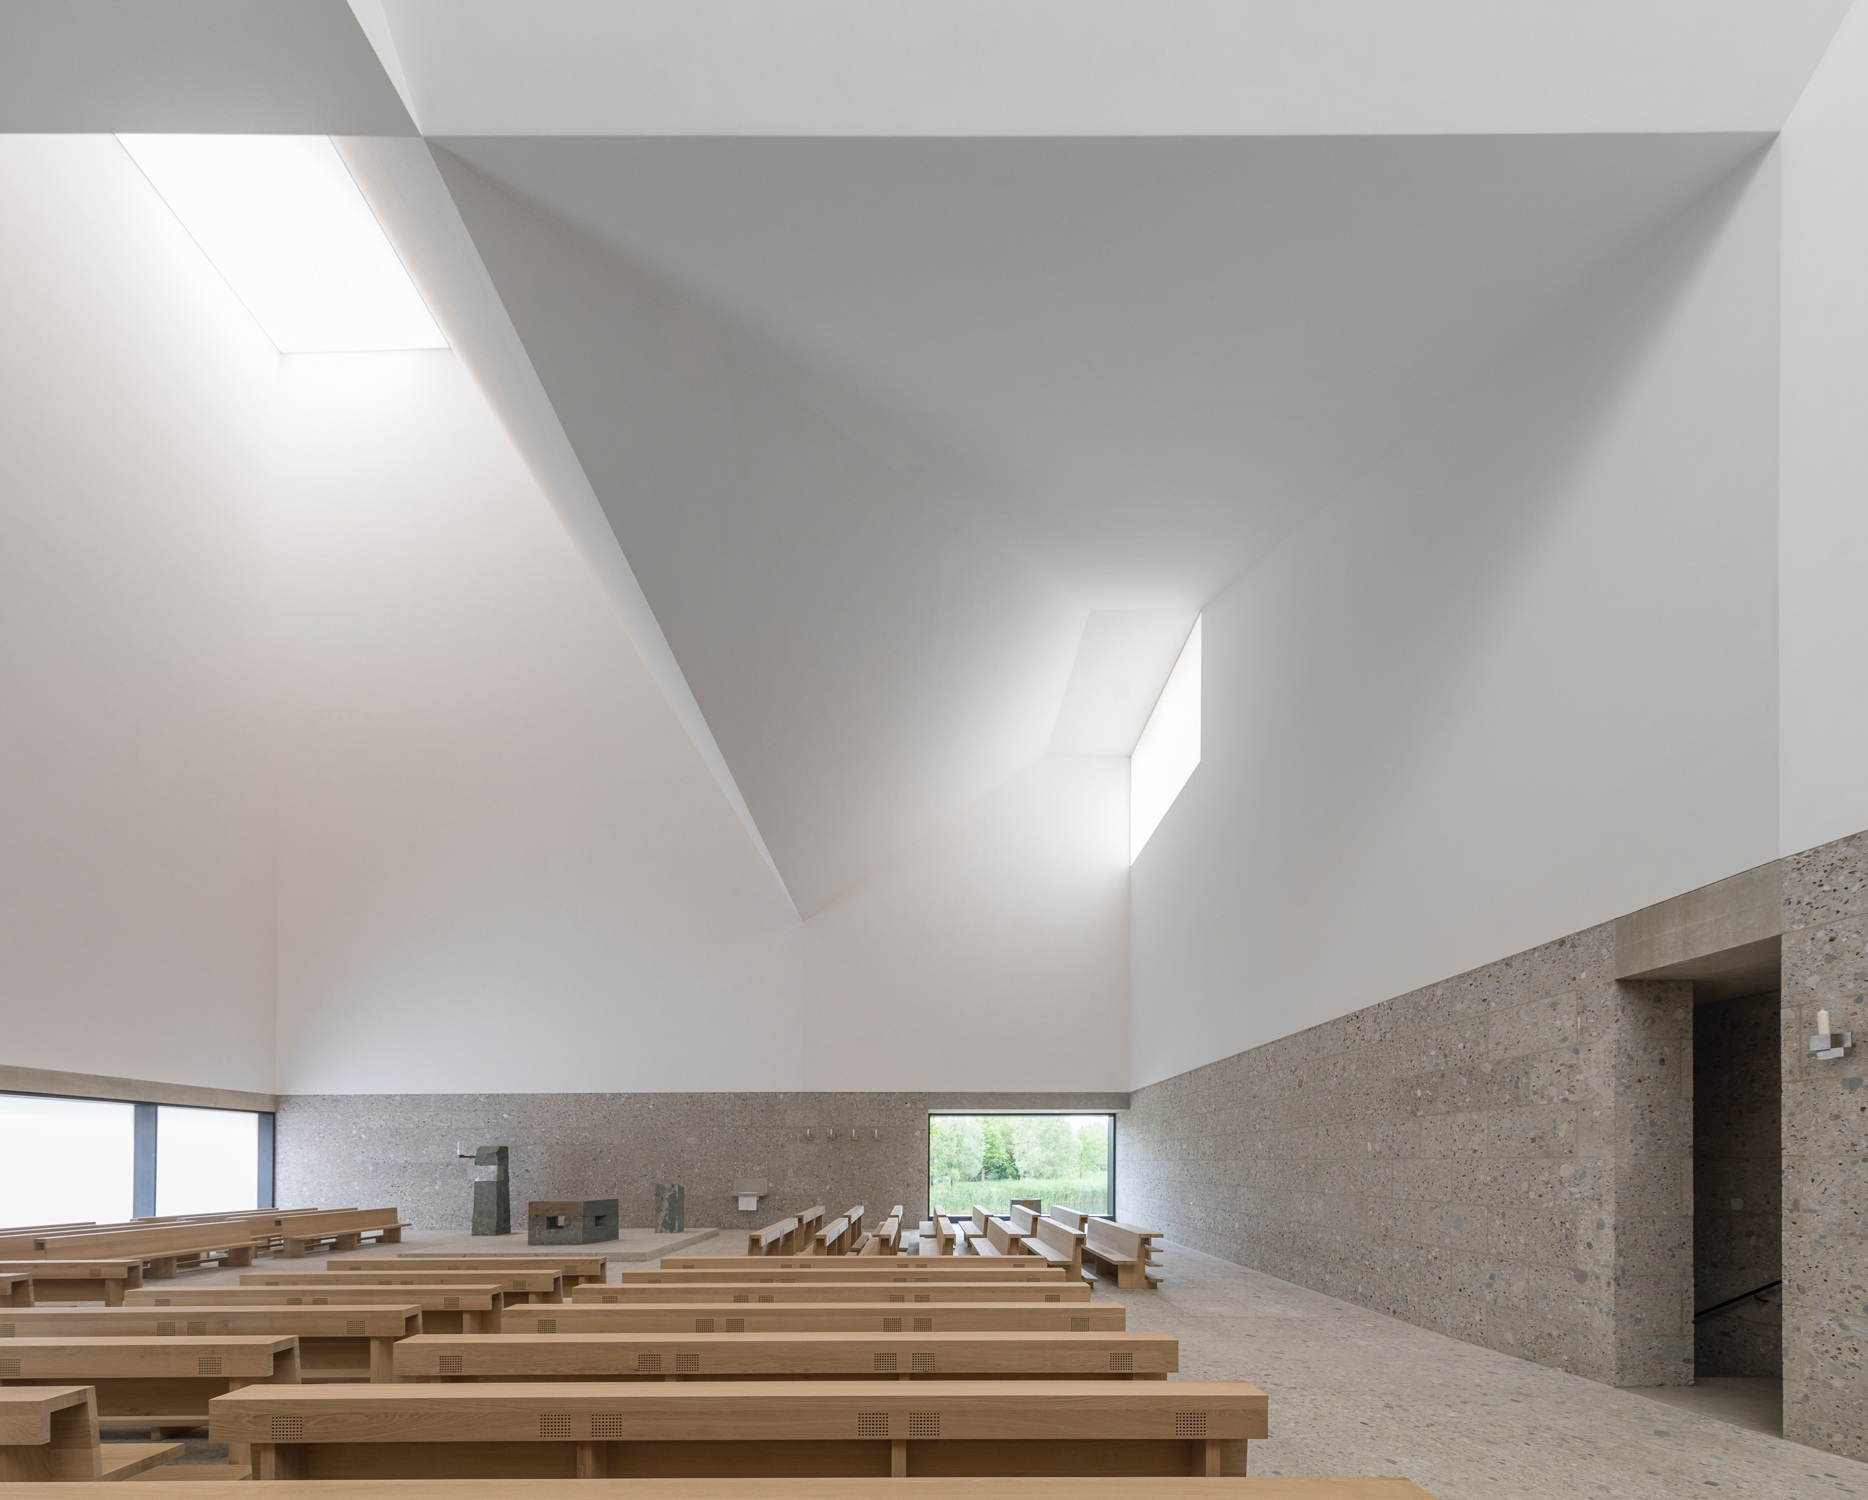 Meck Architekten Katholisches Kirchenzentrum Von Meck Architekten In Poing Der